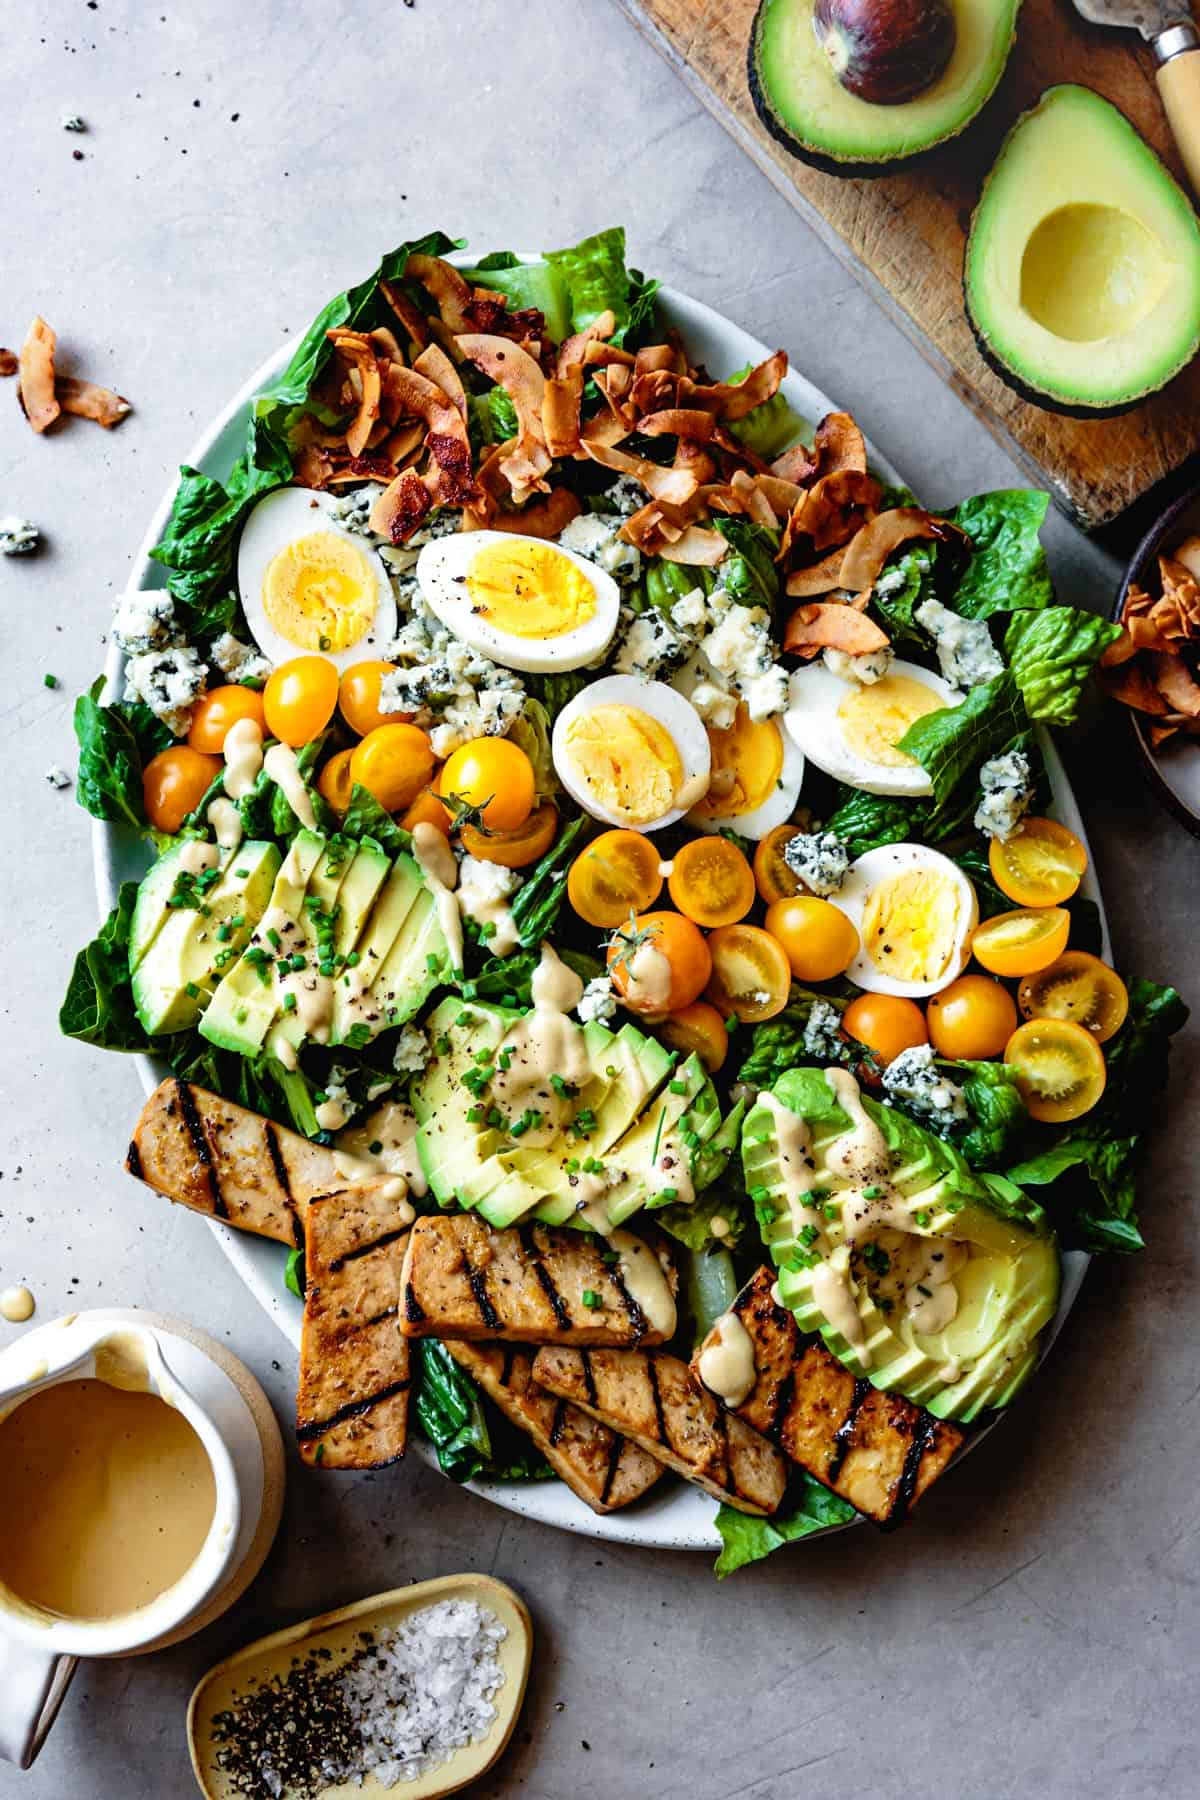 Vegetarian Cobb Salad with Grilled Tofu & Coconut Bacon on table